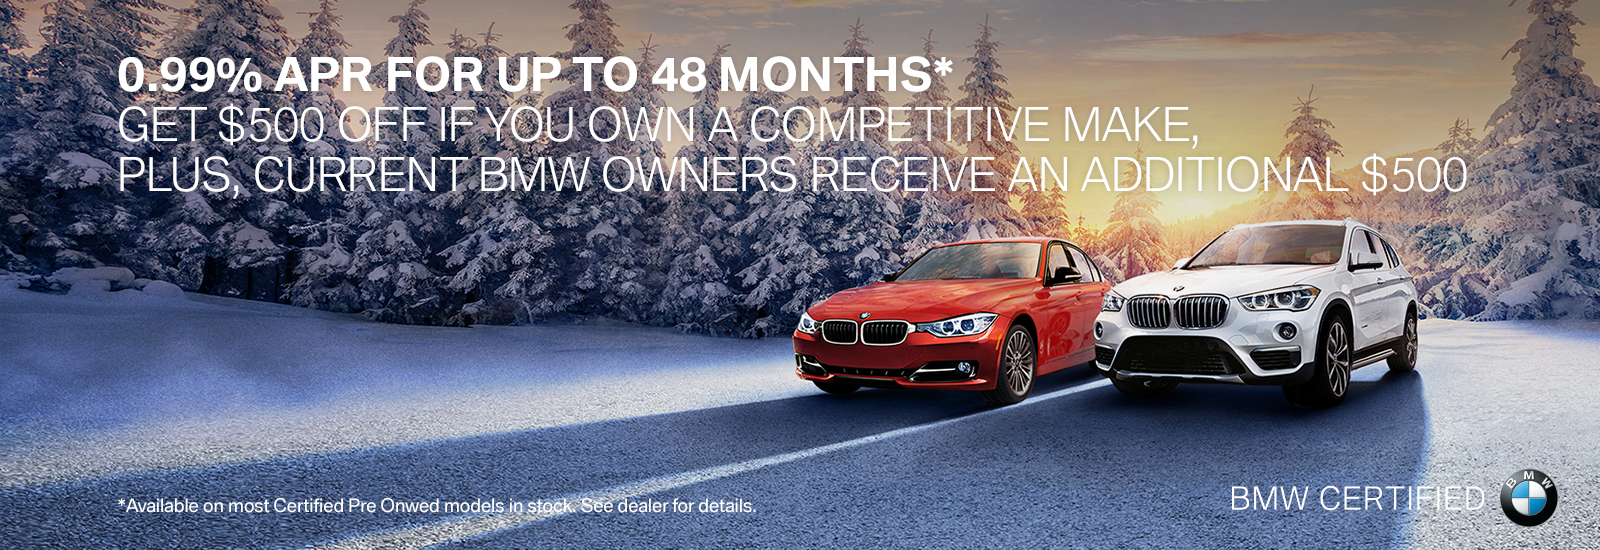 0.99% APR for up to 48 months on CPO Vehicles